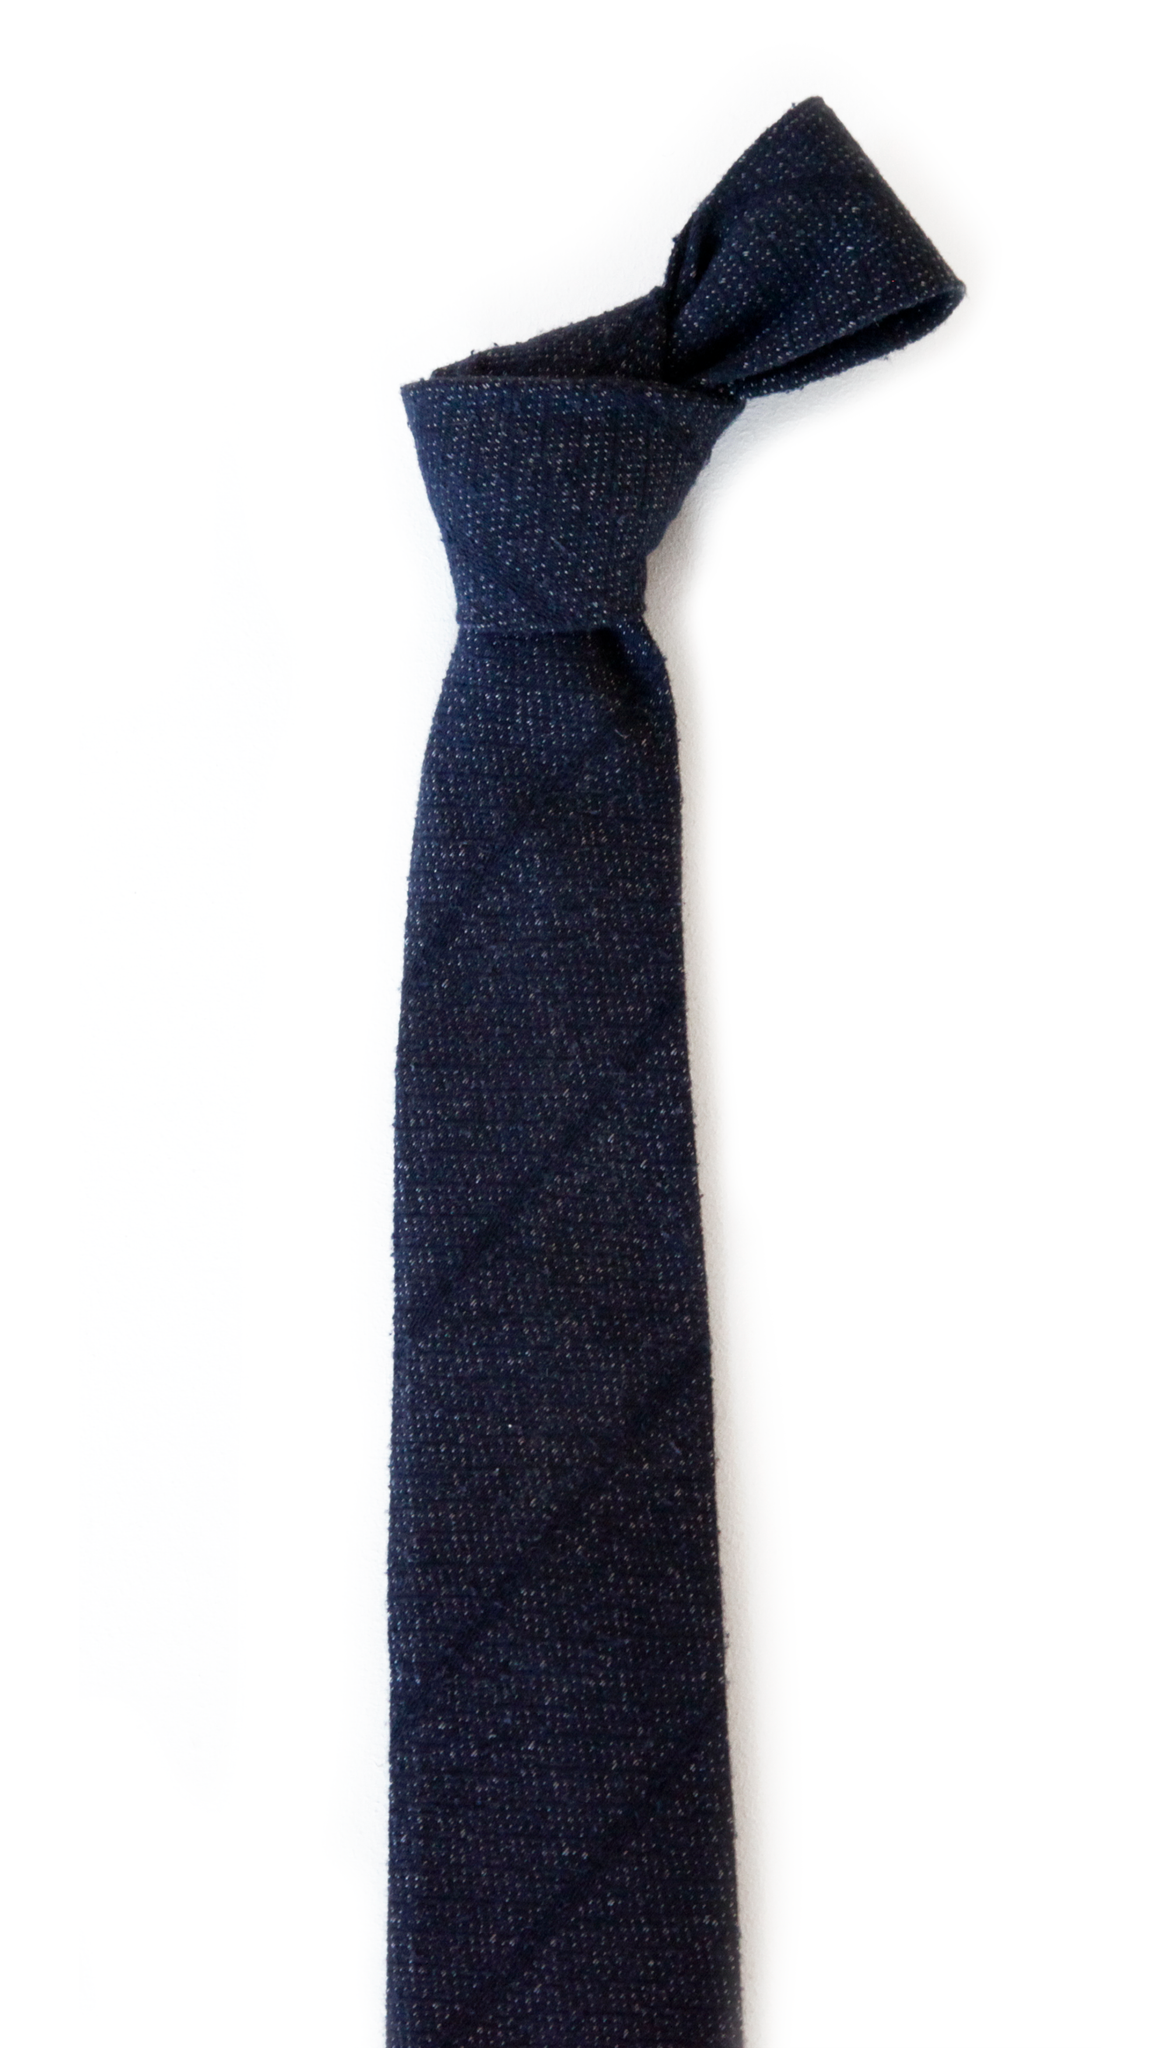 The Griffin Necktie